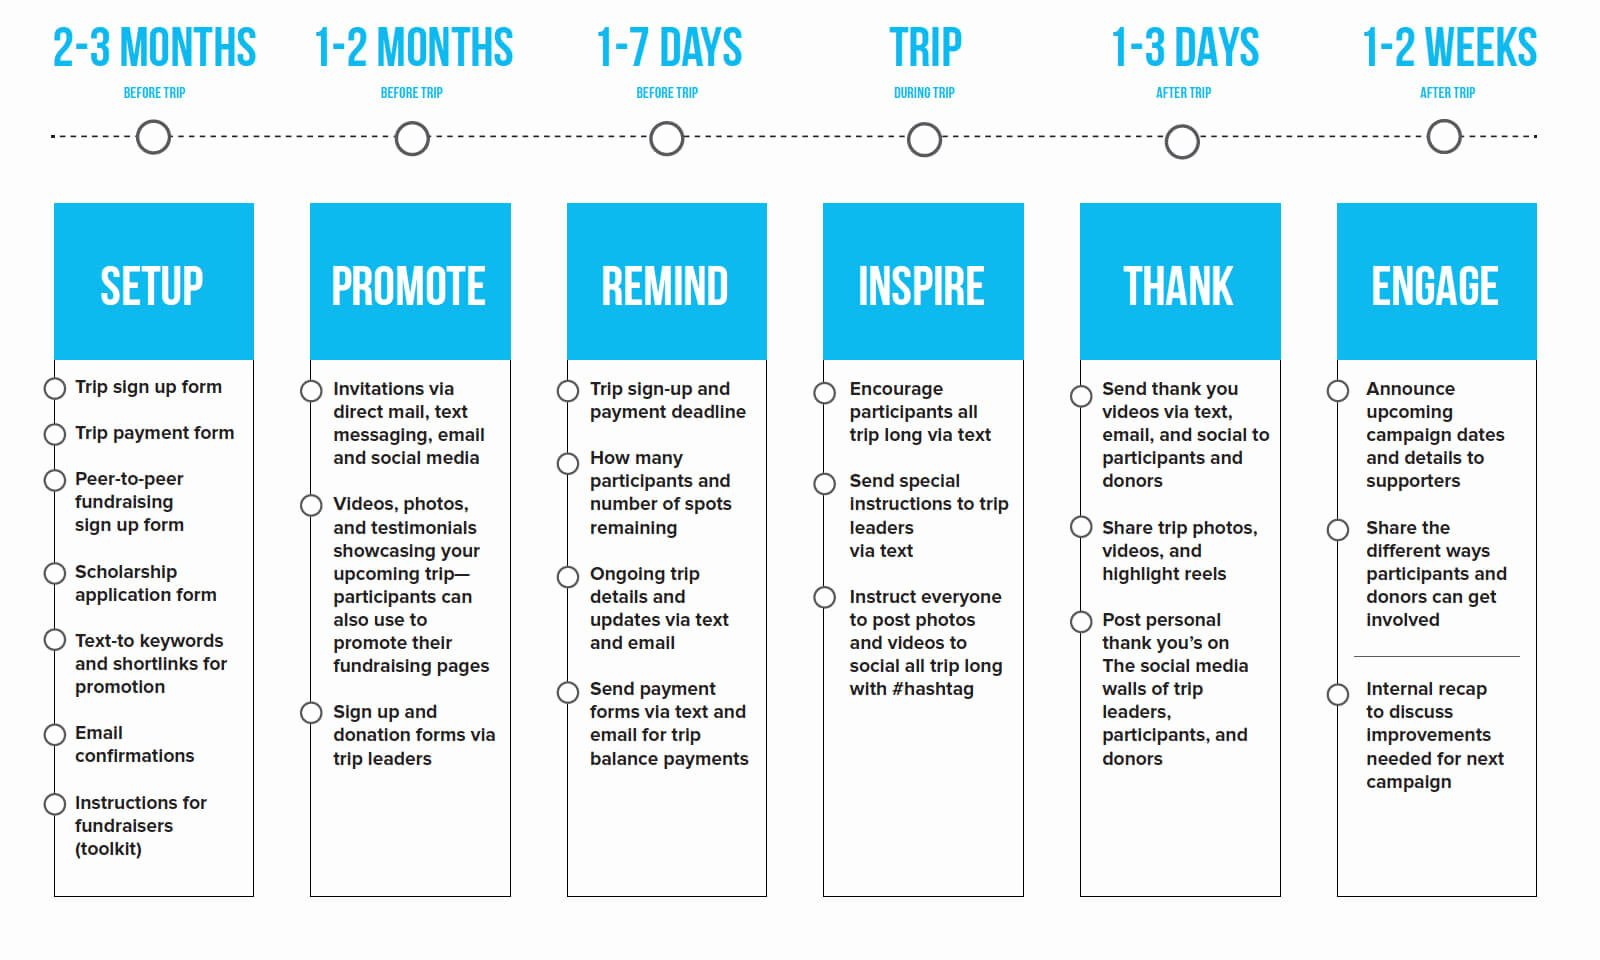 Fundraising Campaign Plan Template Inspirational Fundraising Calendar Templates to Grow Your Nonprofit